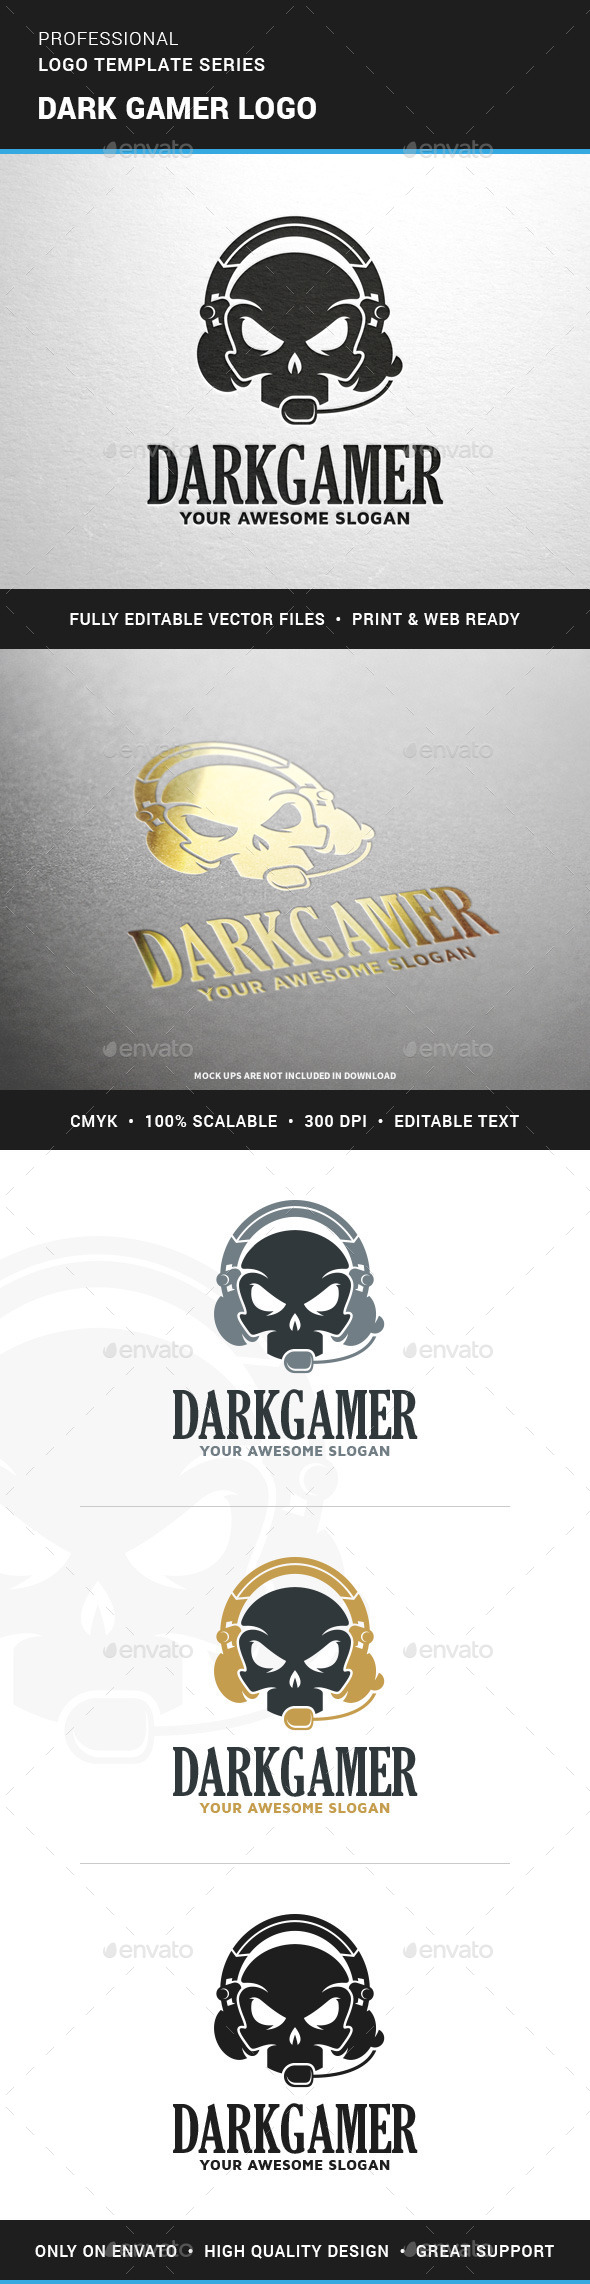 Dark Gamer Logo Template